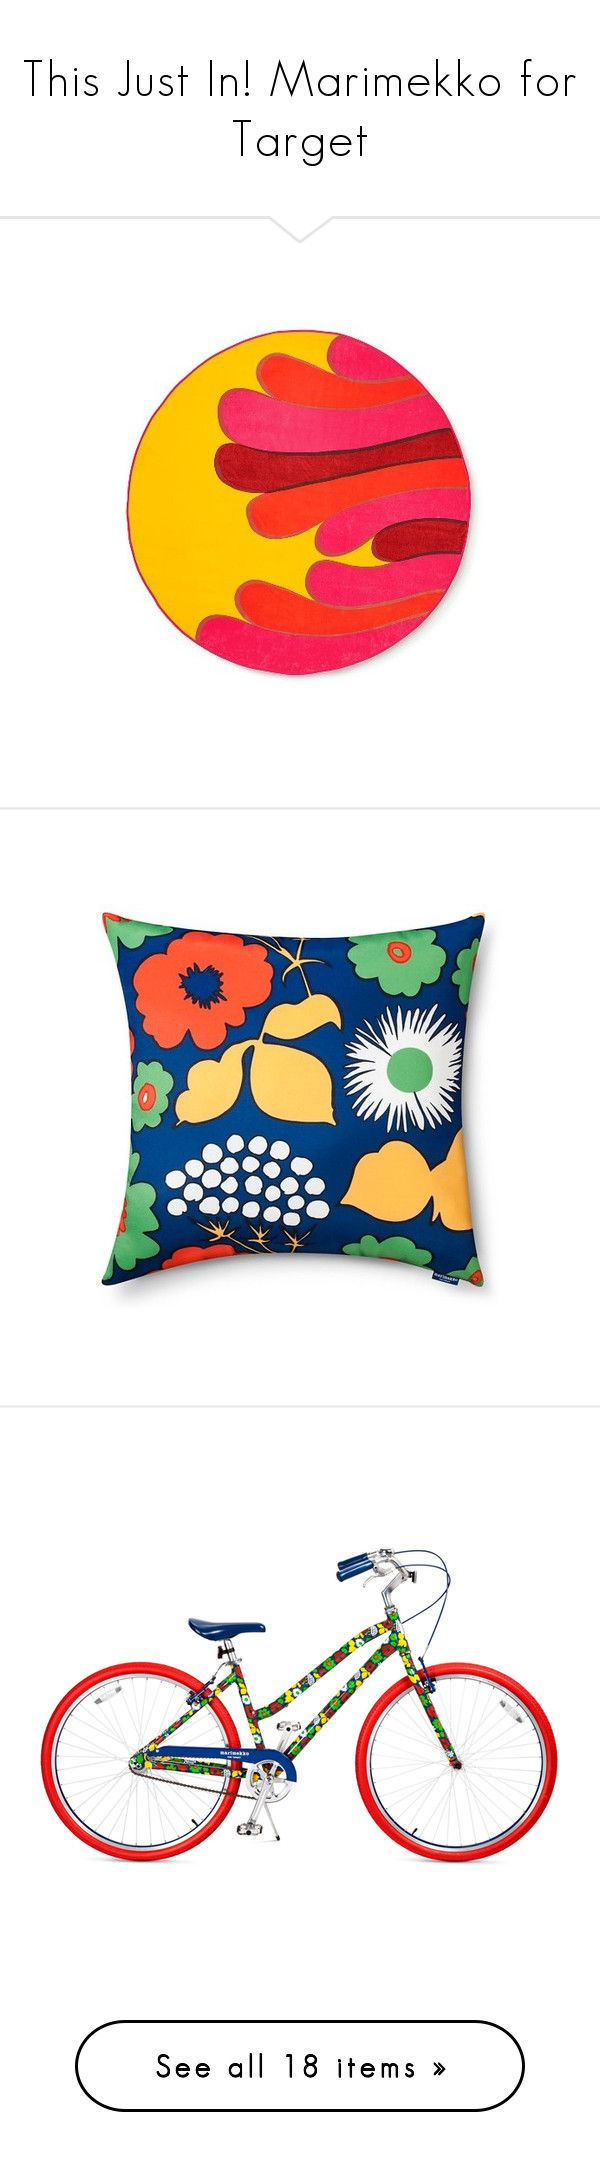 """This Just In! Marimekko for Target"" by polyvore-editorial ❤ liked on Polyvore featuring target, Marimekko, home, bed & bath, bath, beach towels, rugs, kitchen & dining, serveware and home decor"